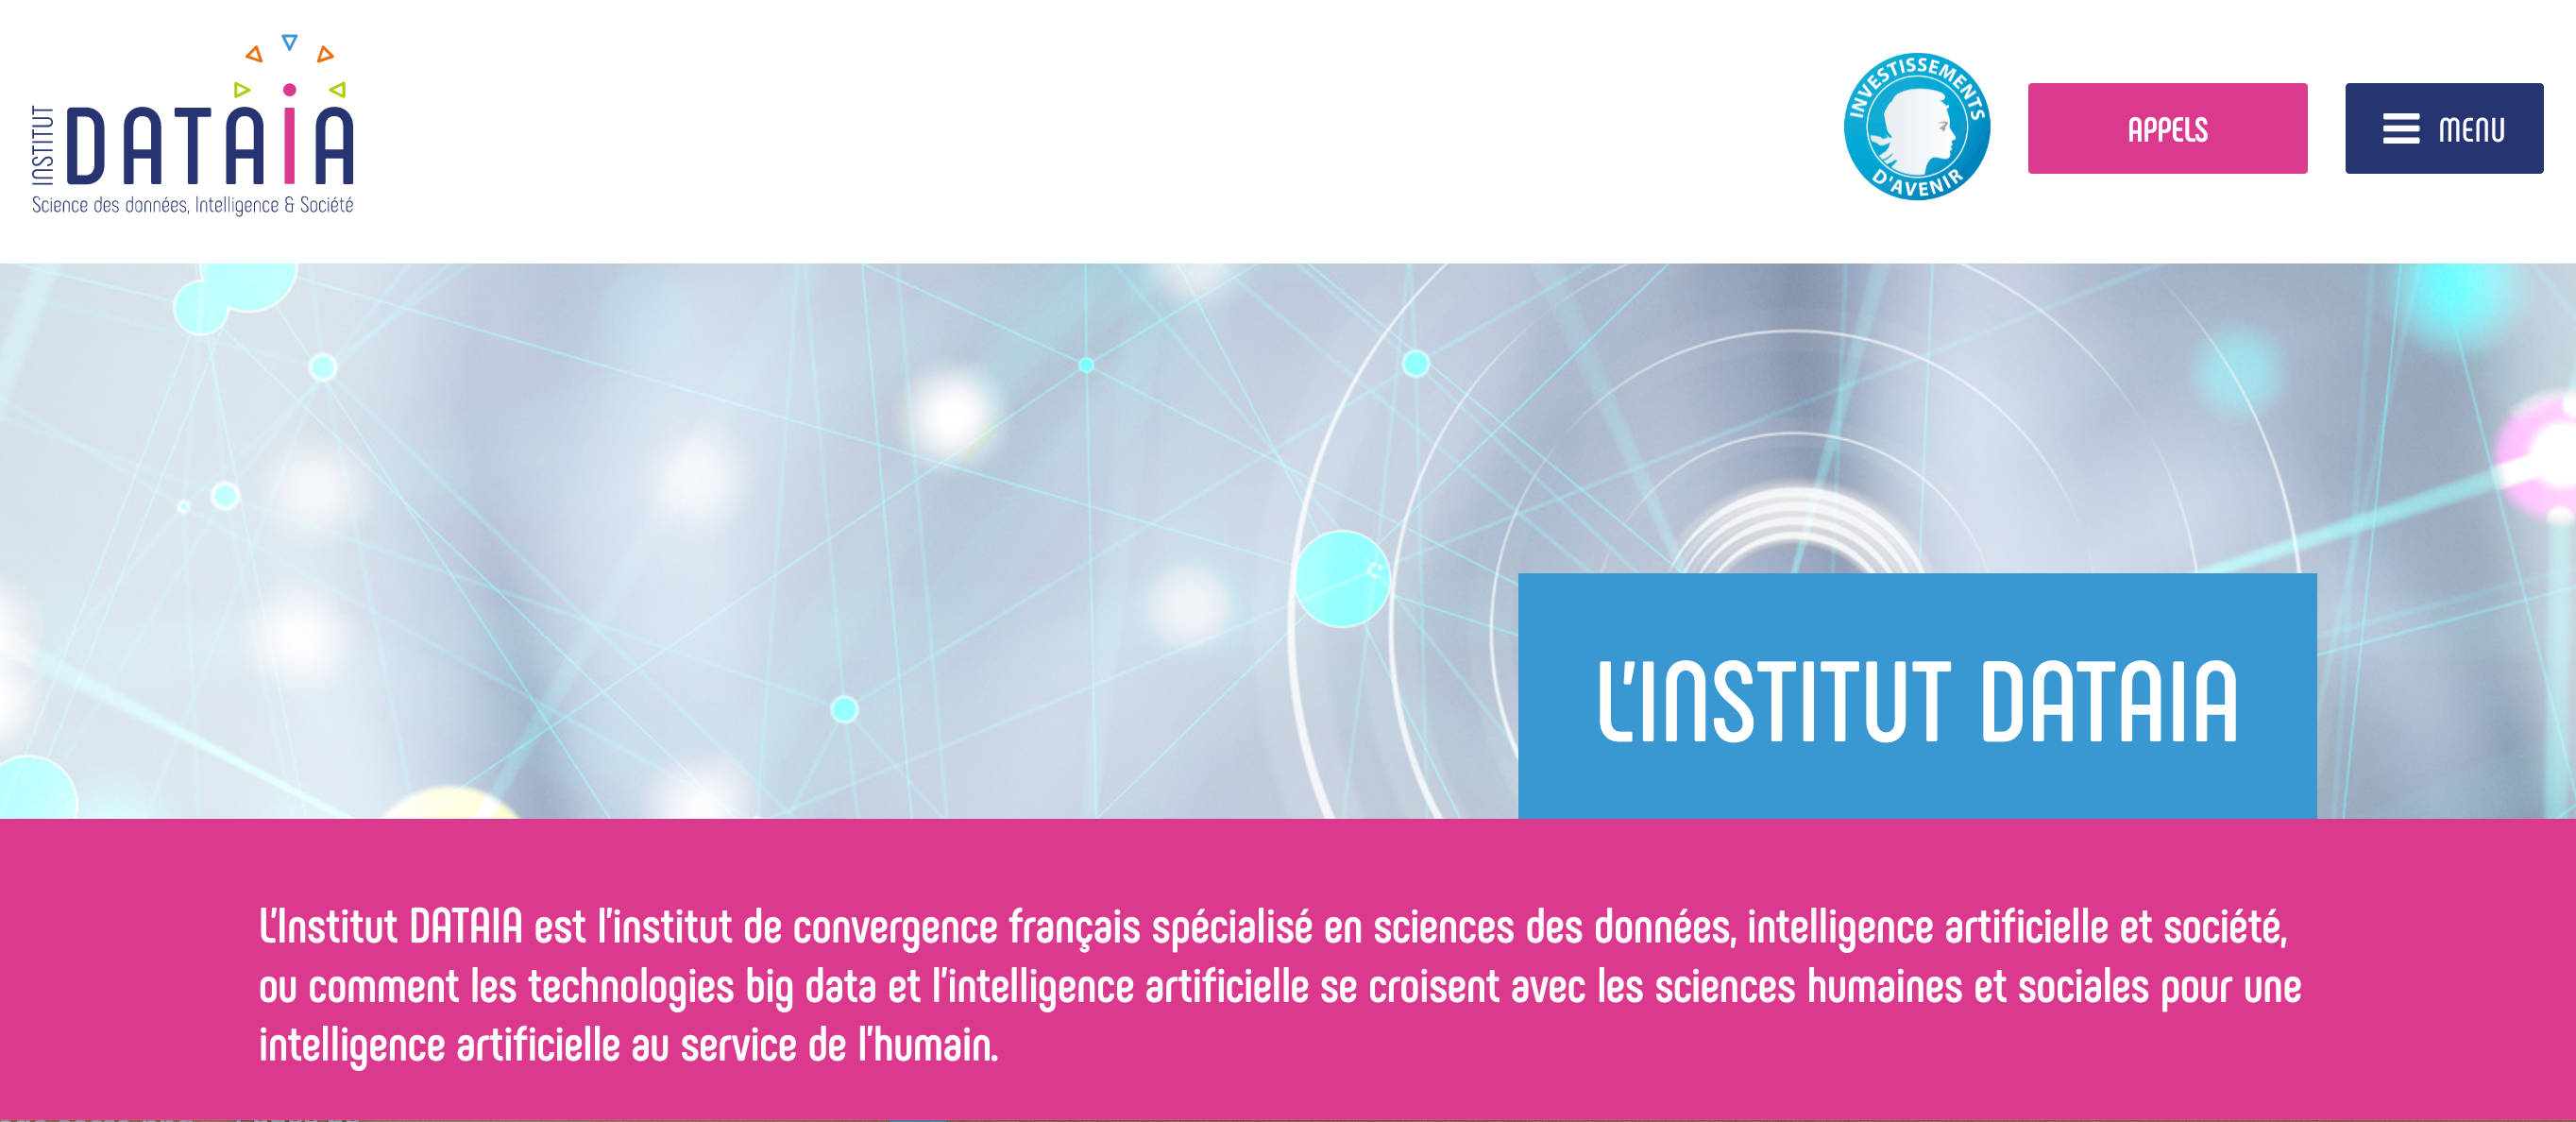 DATAIA Paris-Saclay, a new institute in data sciences, artificial intelligence and society